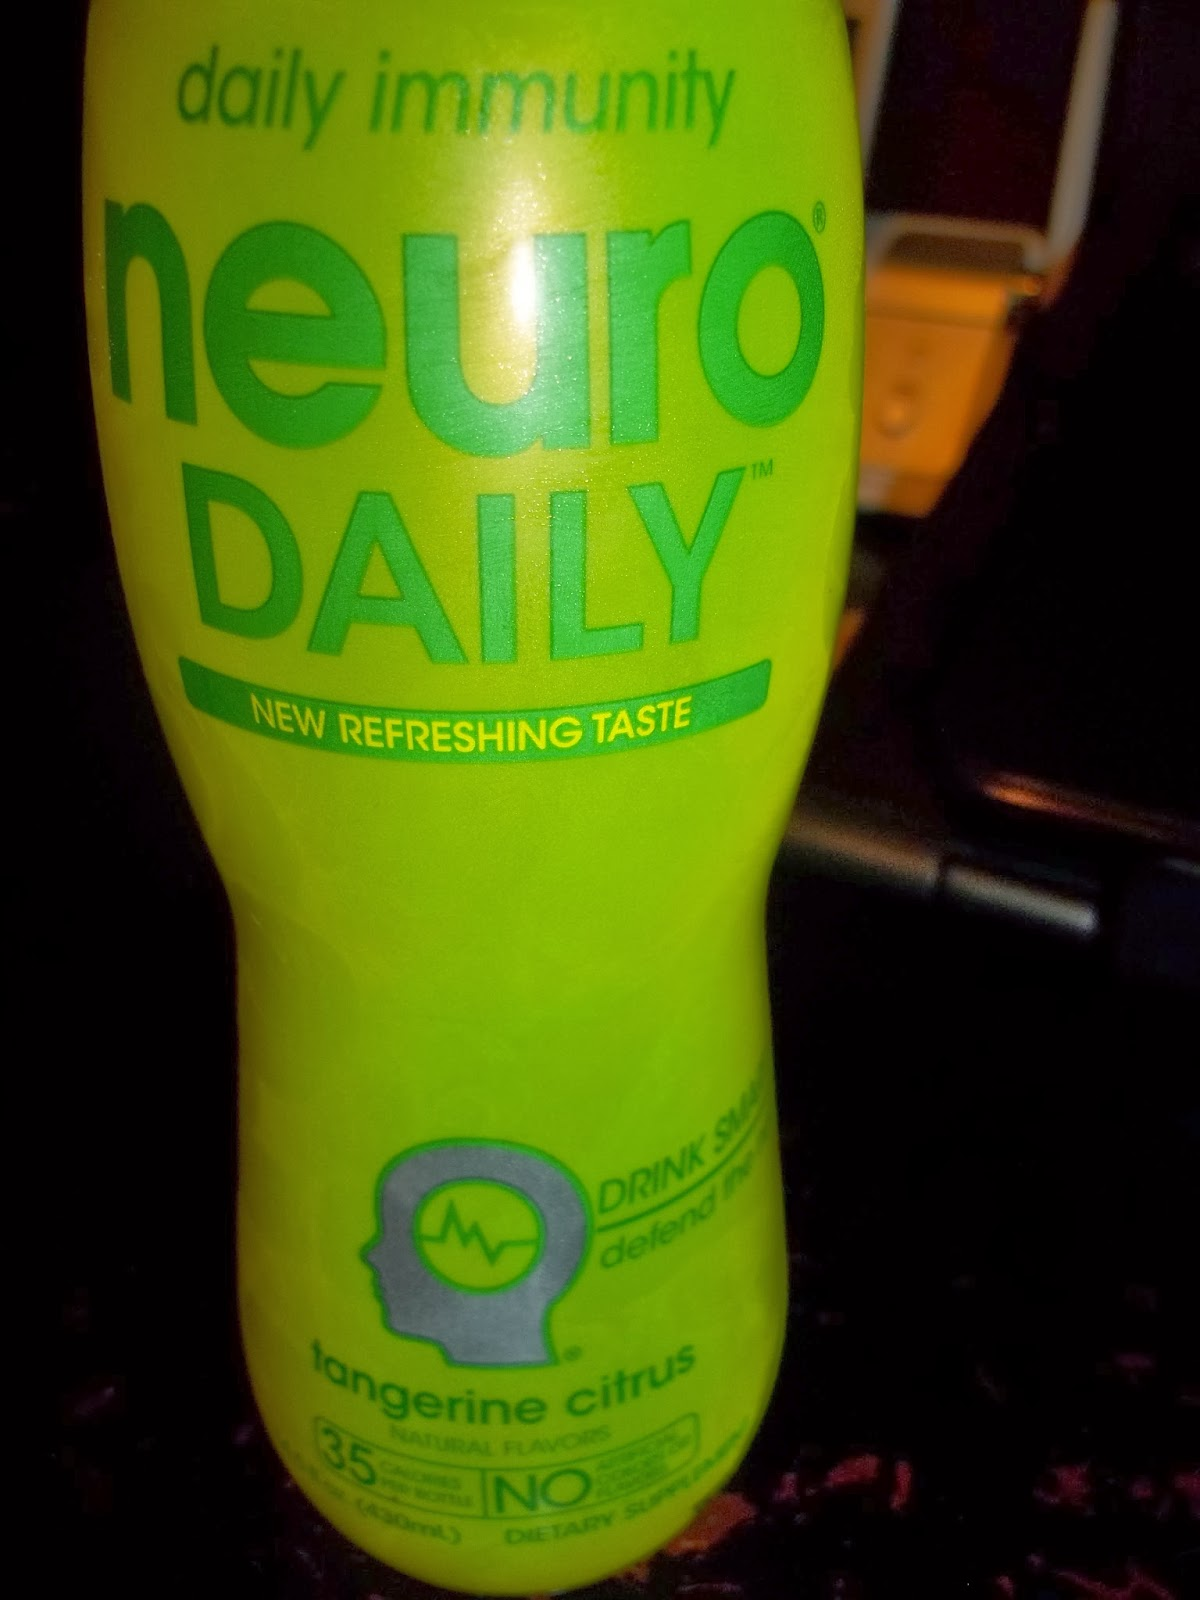 Neuro daily review